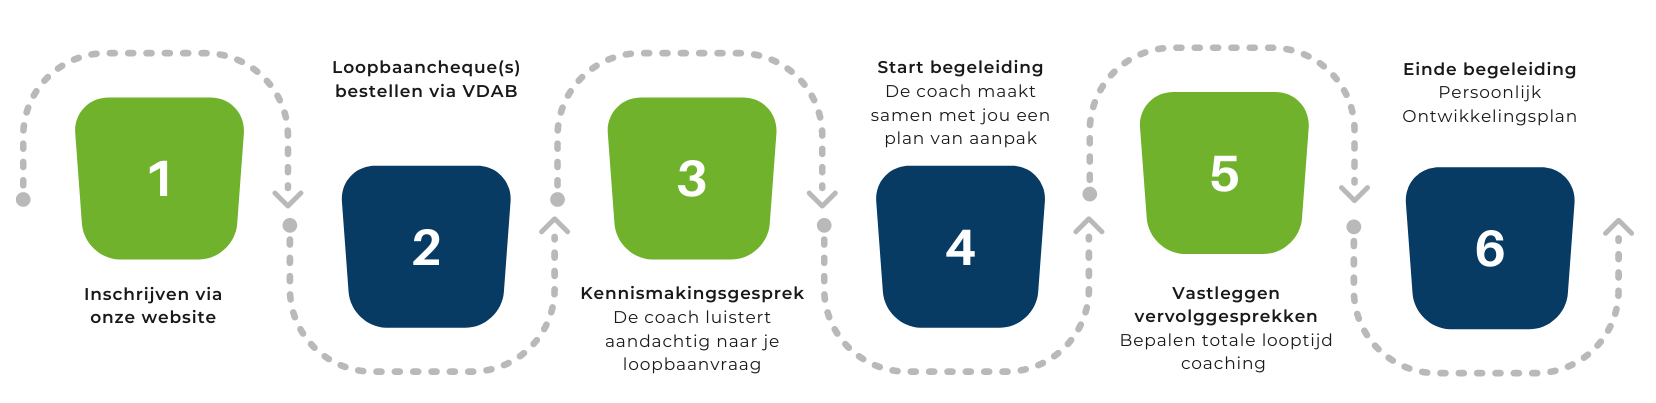 Stappenplan outplacement